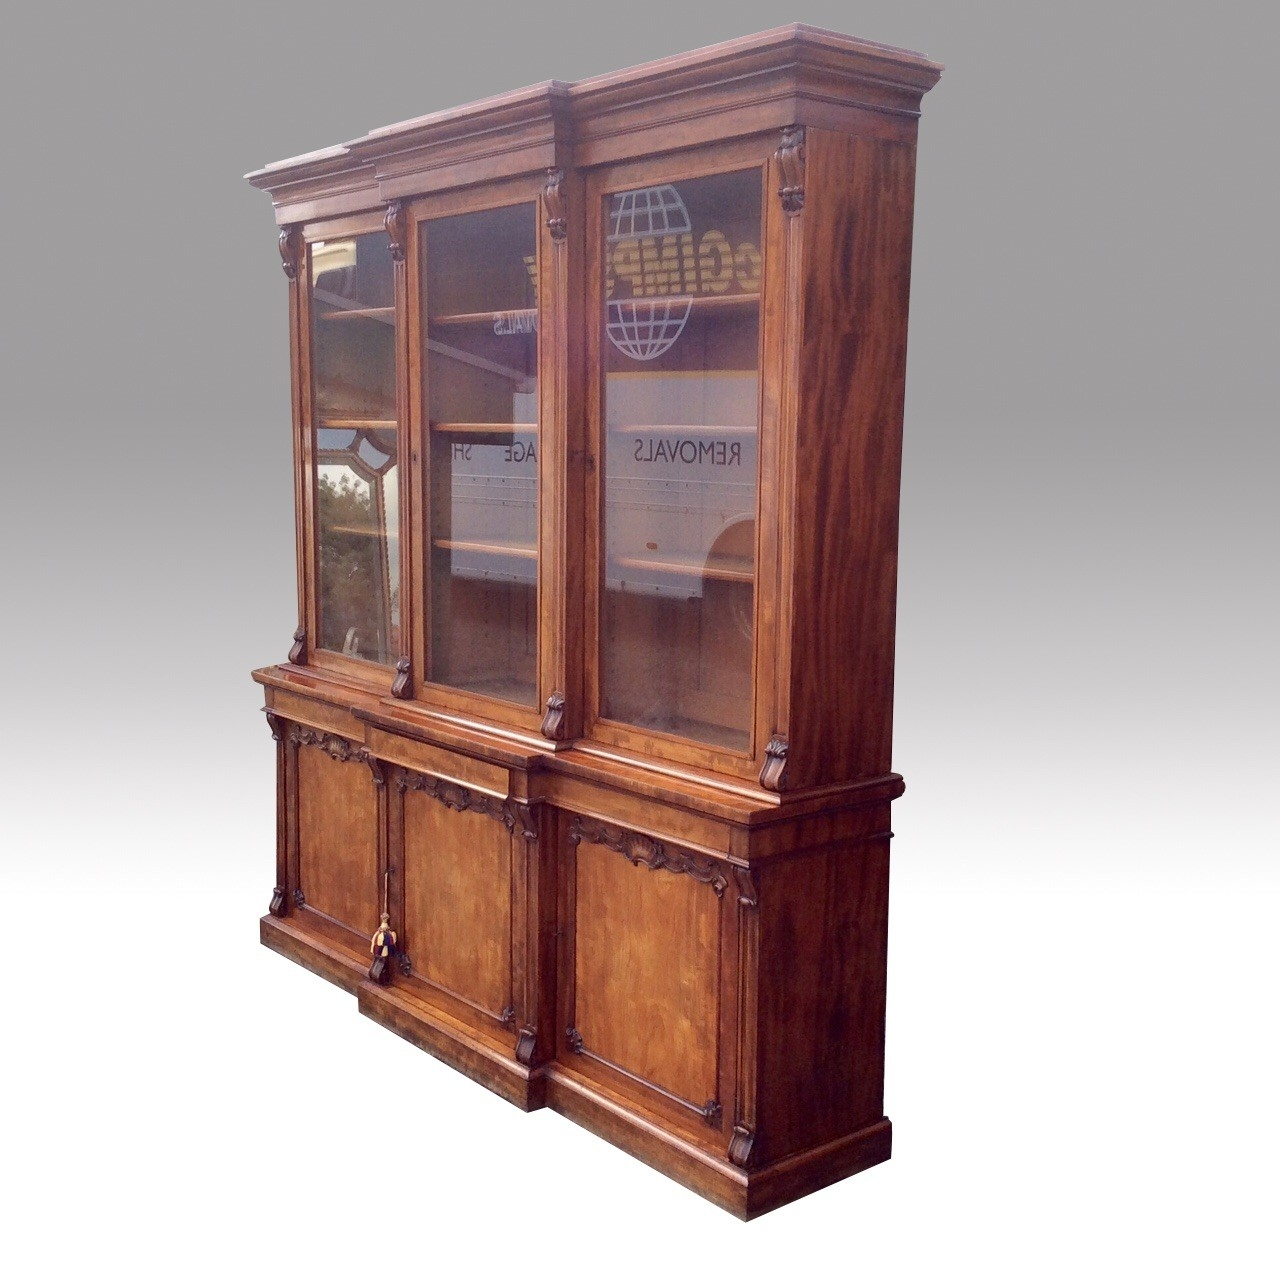 Very Fine Quality Antique Mahogany Three Door Library Breakfront Throughout Breakfront Bookcase (View 12 of 15)